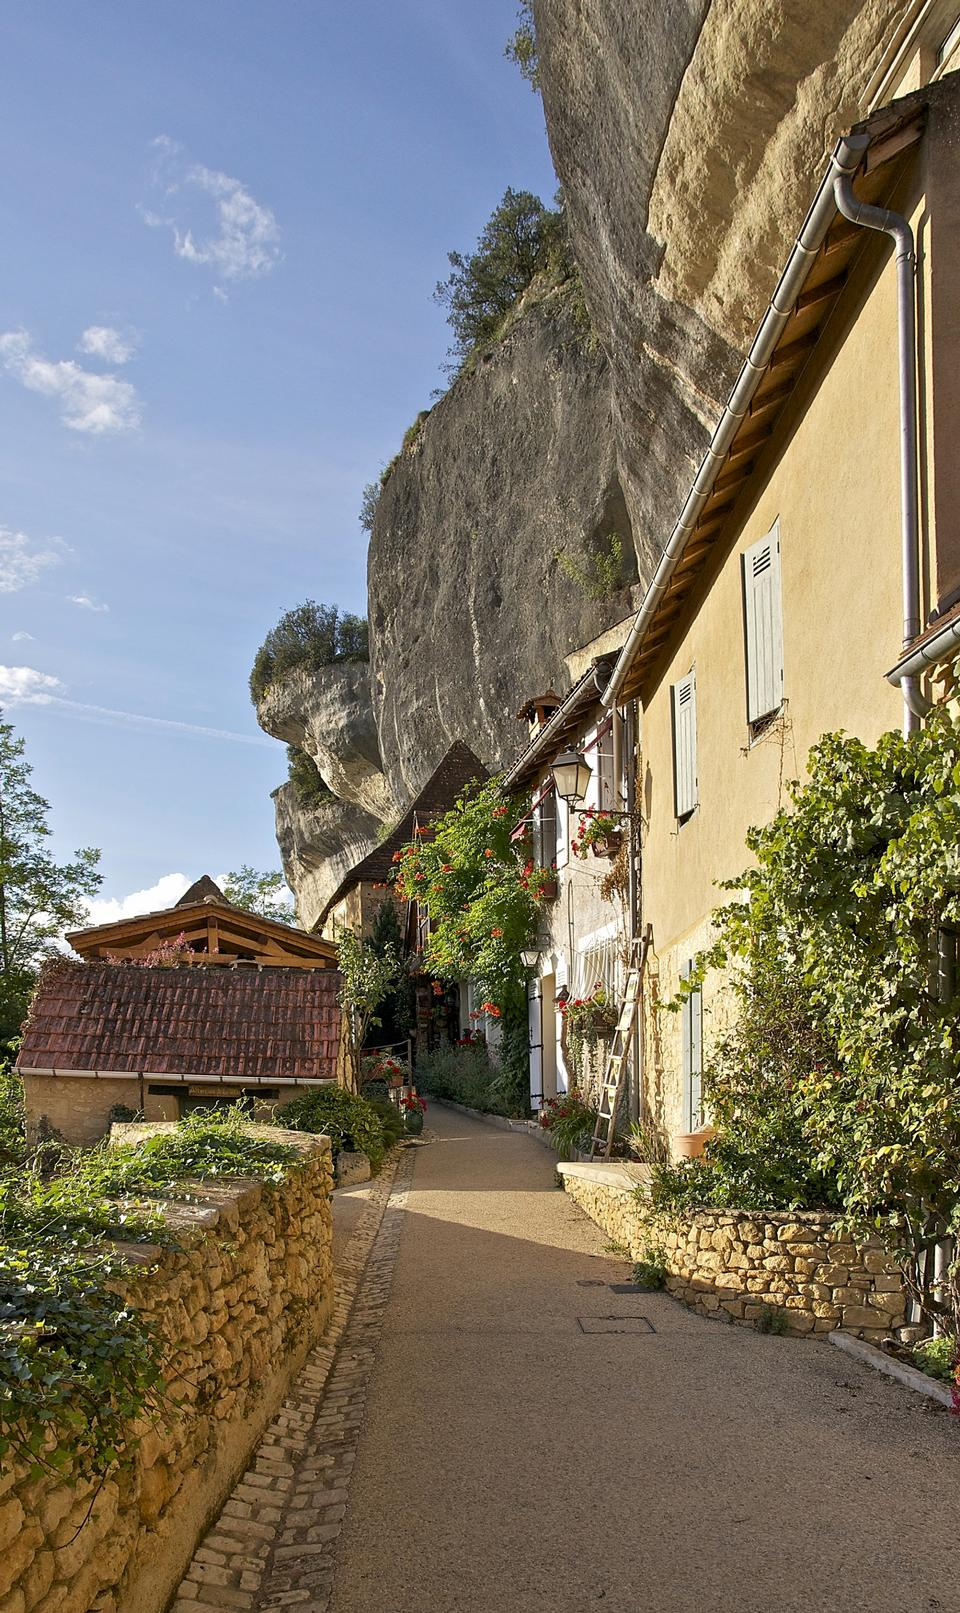 A lane under the cliff, Les Eyzies-de-Tayac, Dordogne, France